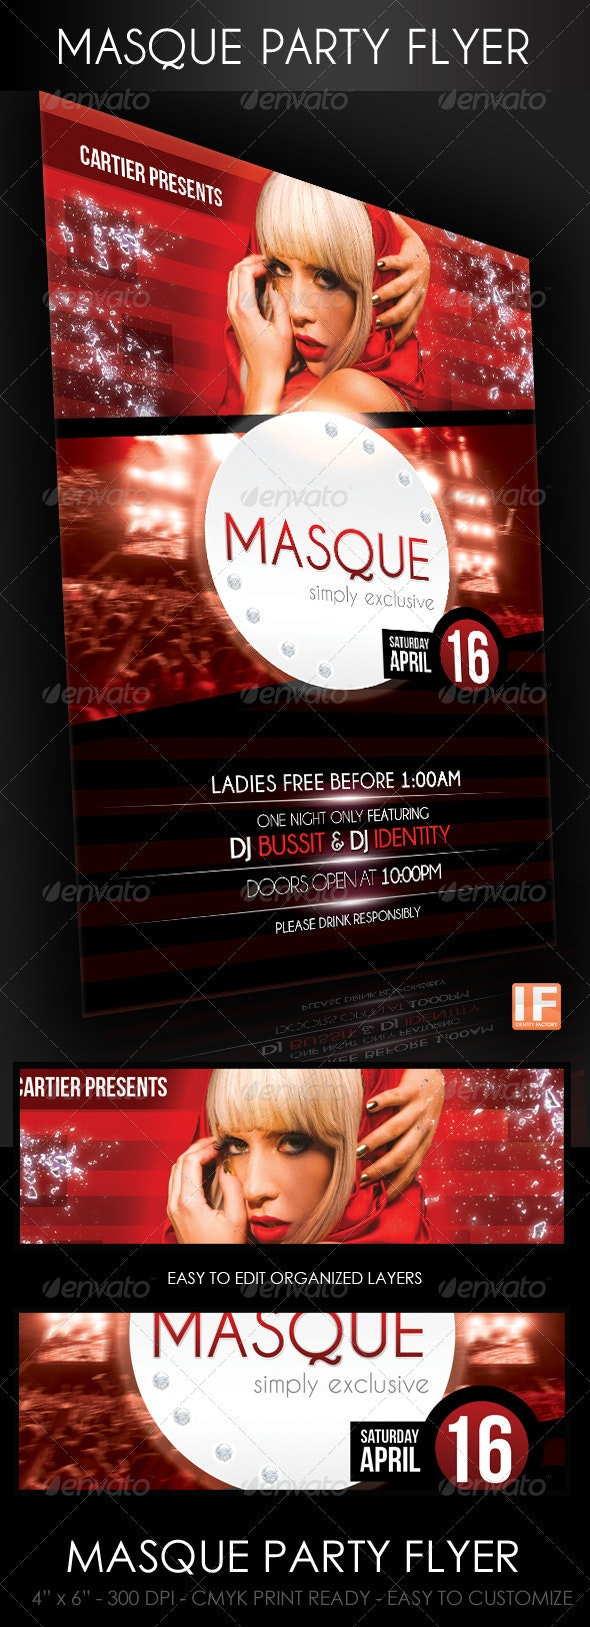 Masque Party Flyer - Clubs & Parties Events